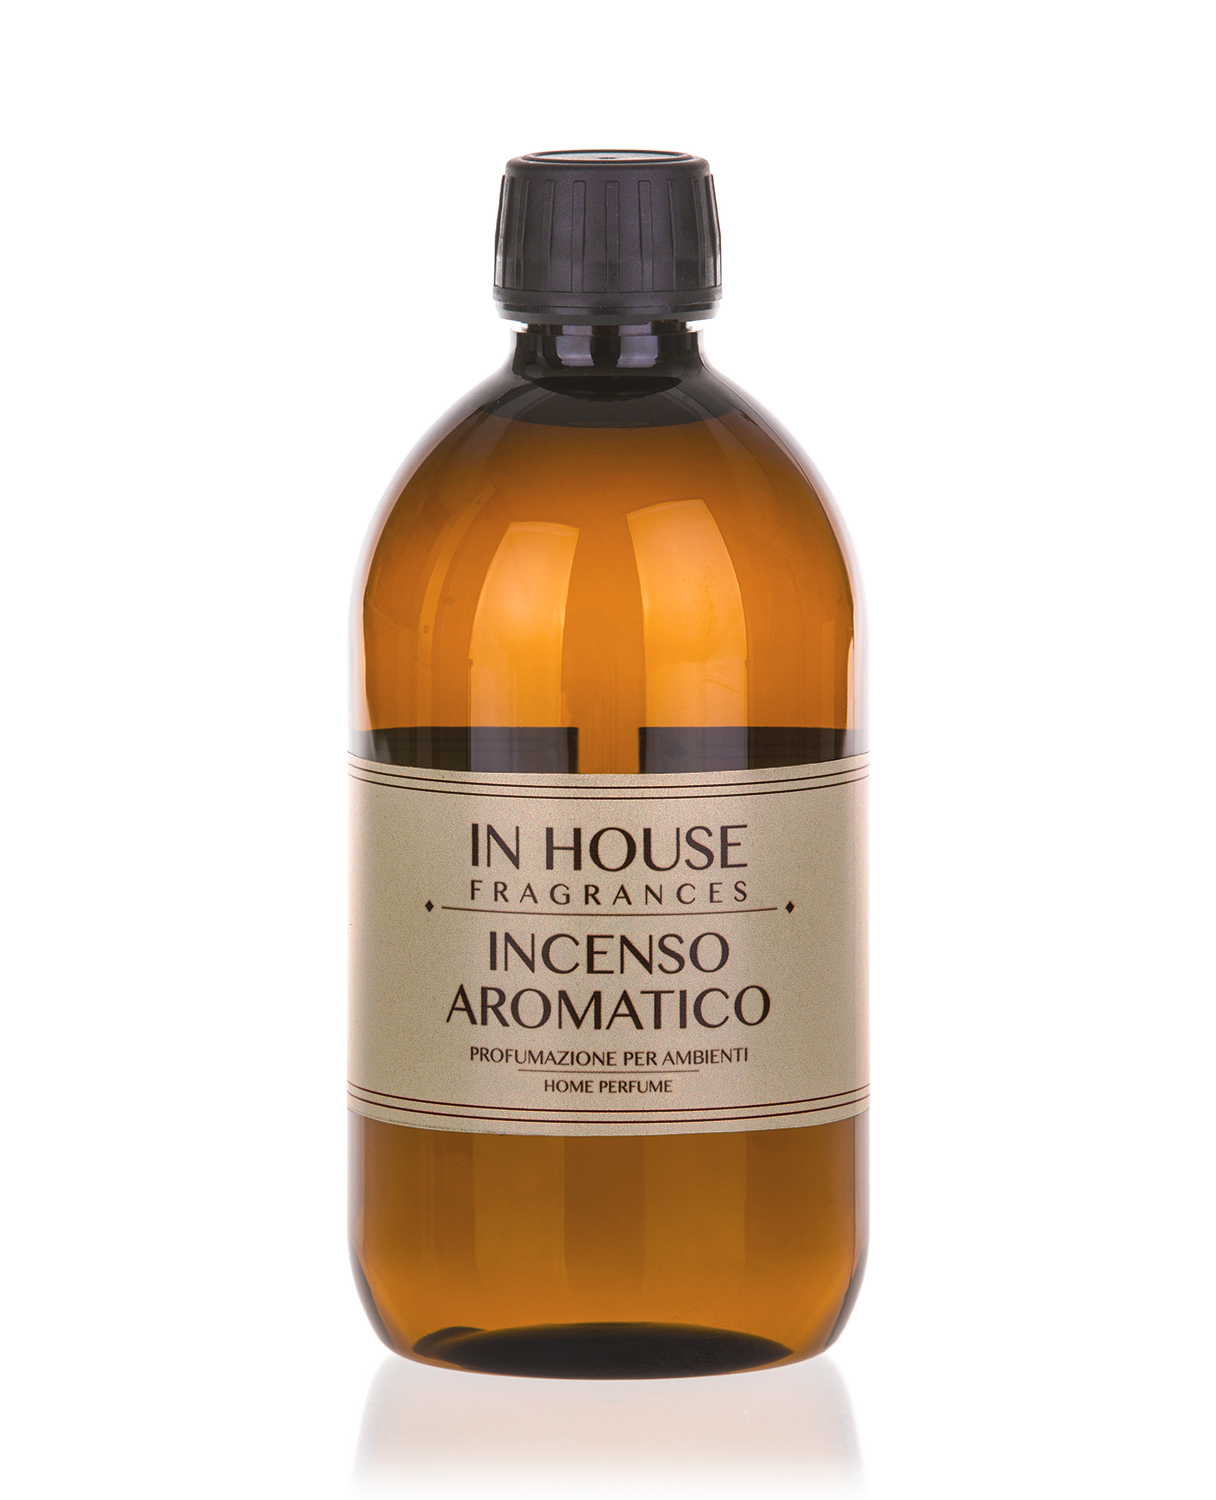 500 Ricarica Fragrances House Aromatico Ml Profumo In Incenso FcT13KJl